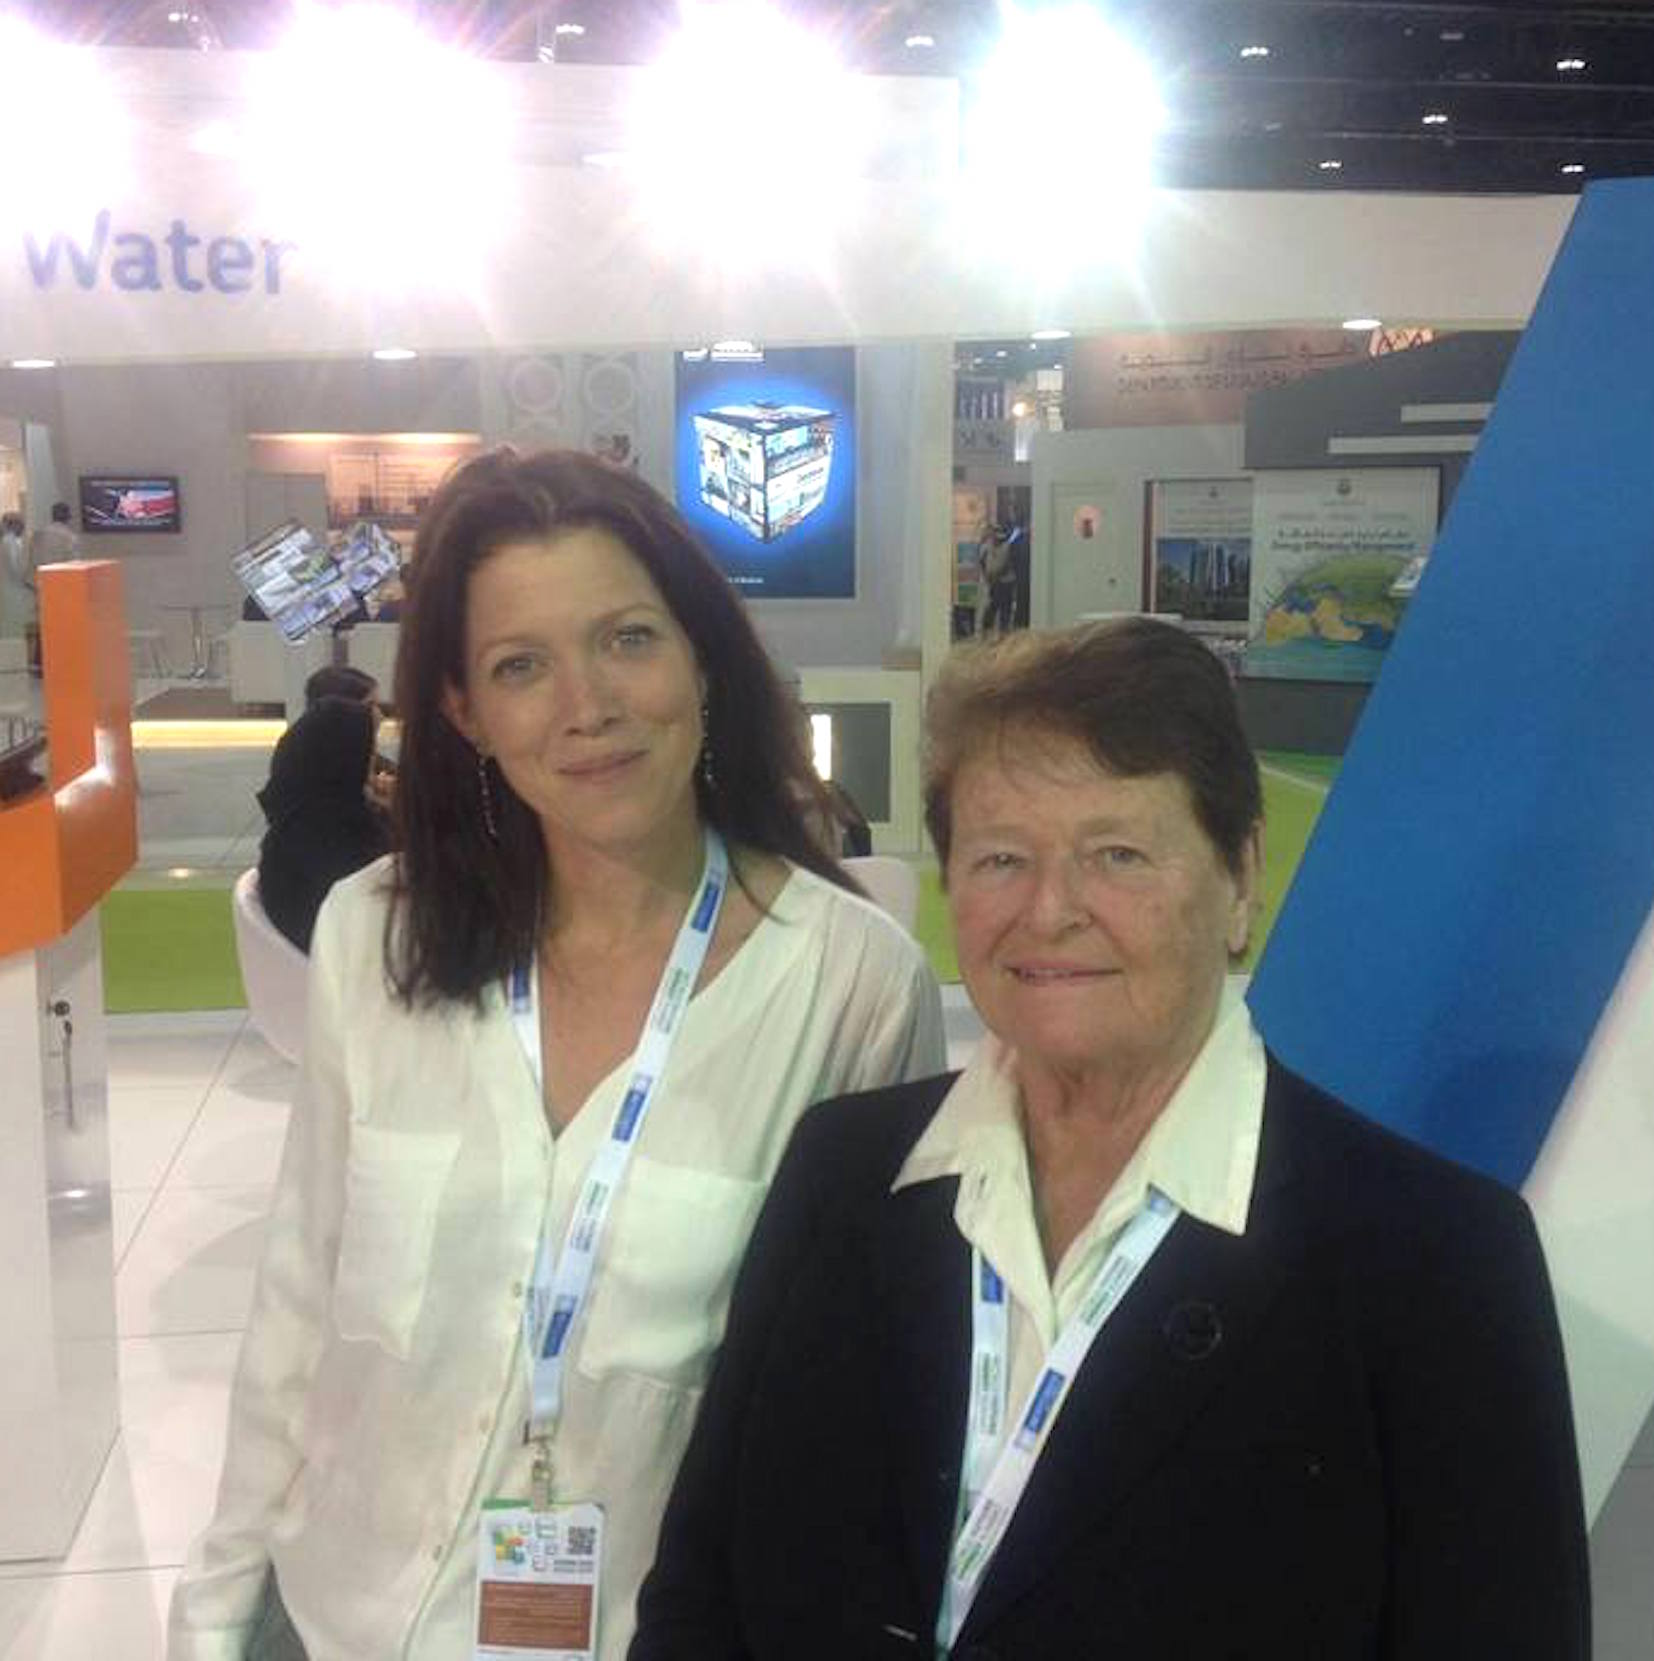 Miriam Mannak, sustainability writer and freelance journalist in South Africa, interviewed Gro Brundtland during the 2016 Abu Dhabi Sustainability Week